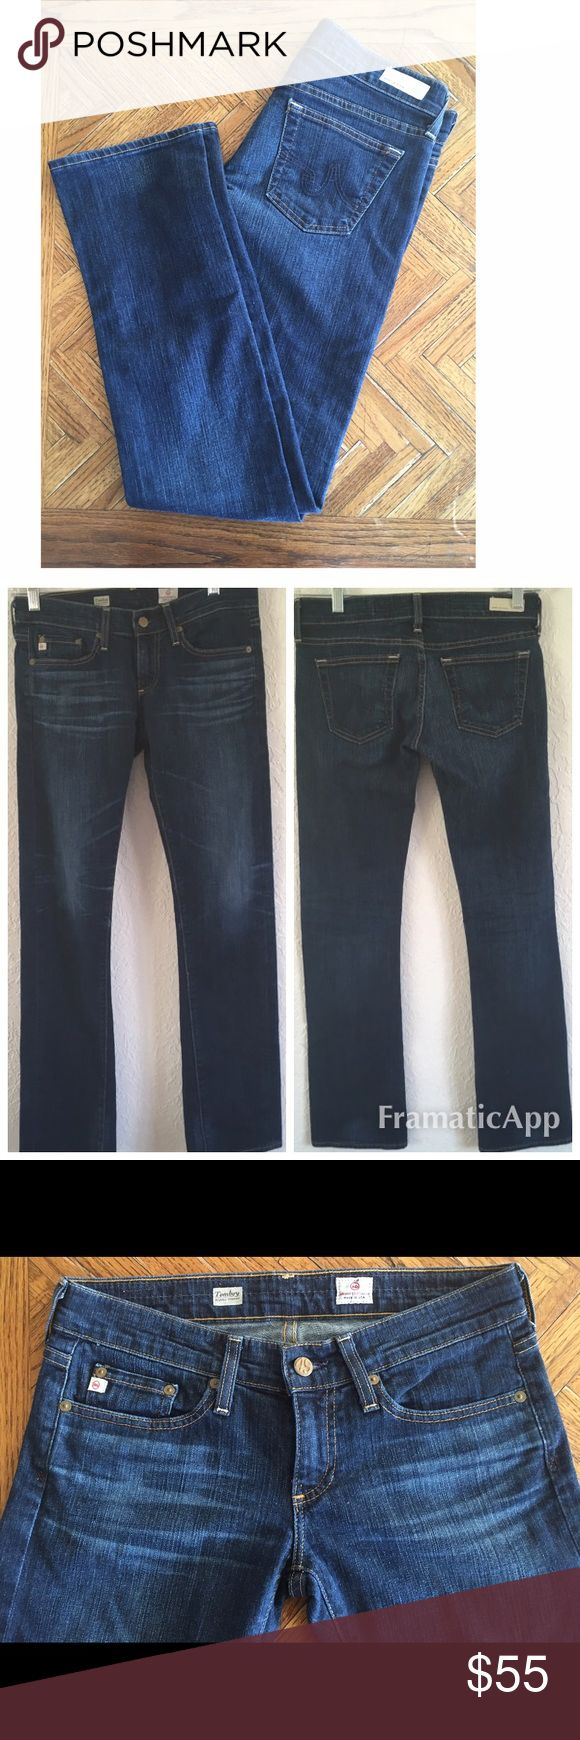 AG jeans Adriano Goldschmied tomboy 26R AG jeans Adriano Goldschmied tomboy 26R immaculate and perfect condition AG Adriano Goldschmied Jeans Straight Leg